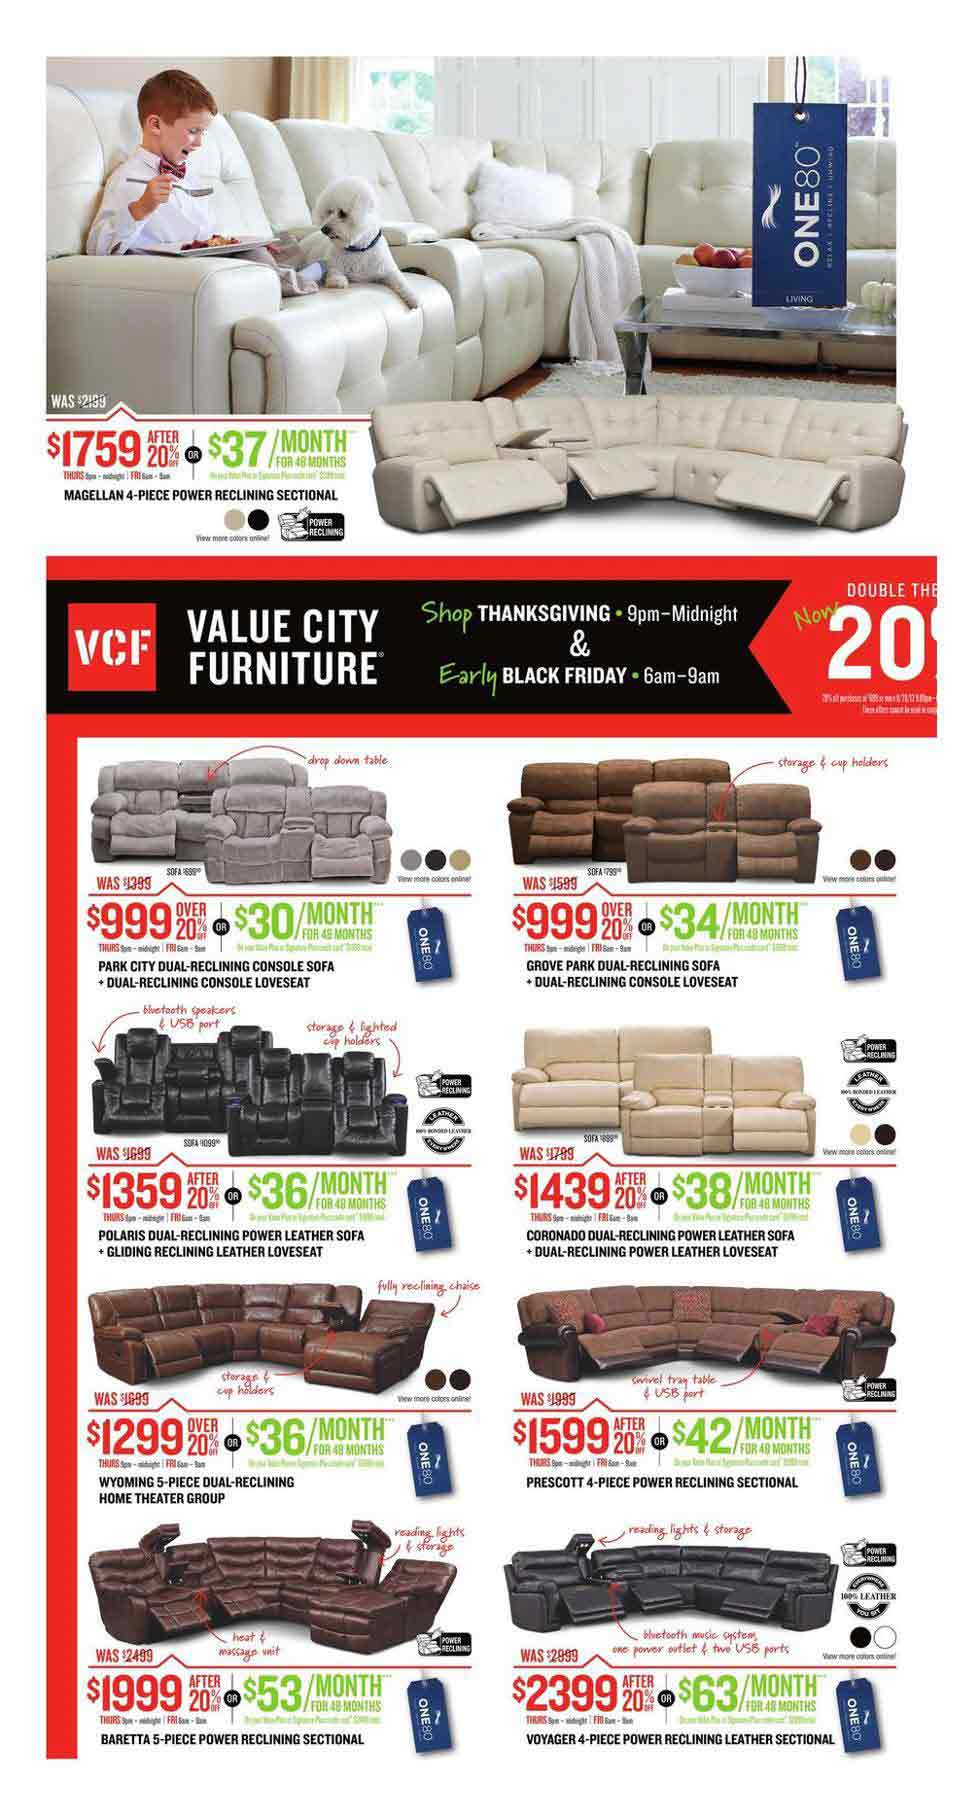 snuggler friday all furniture deals cupboard news next offers black best the